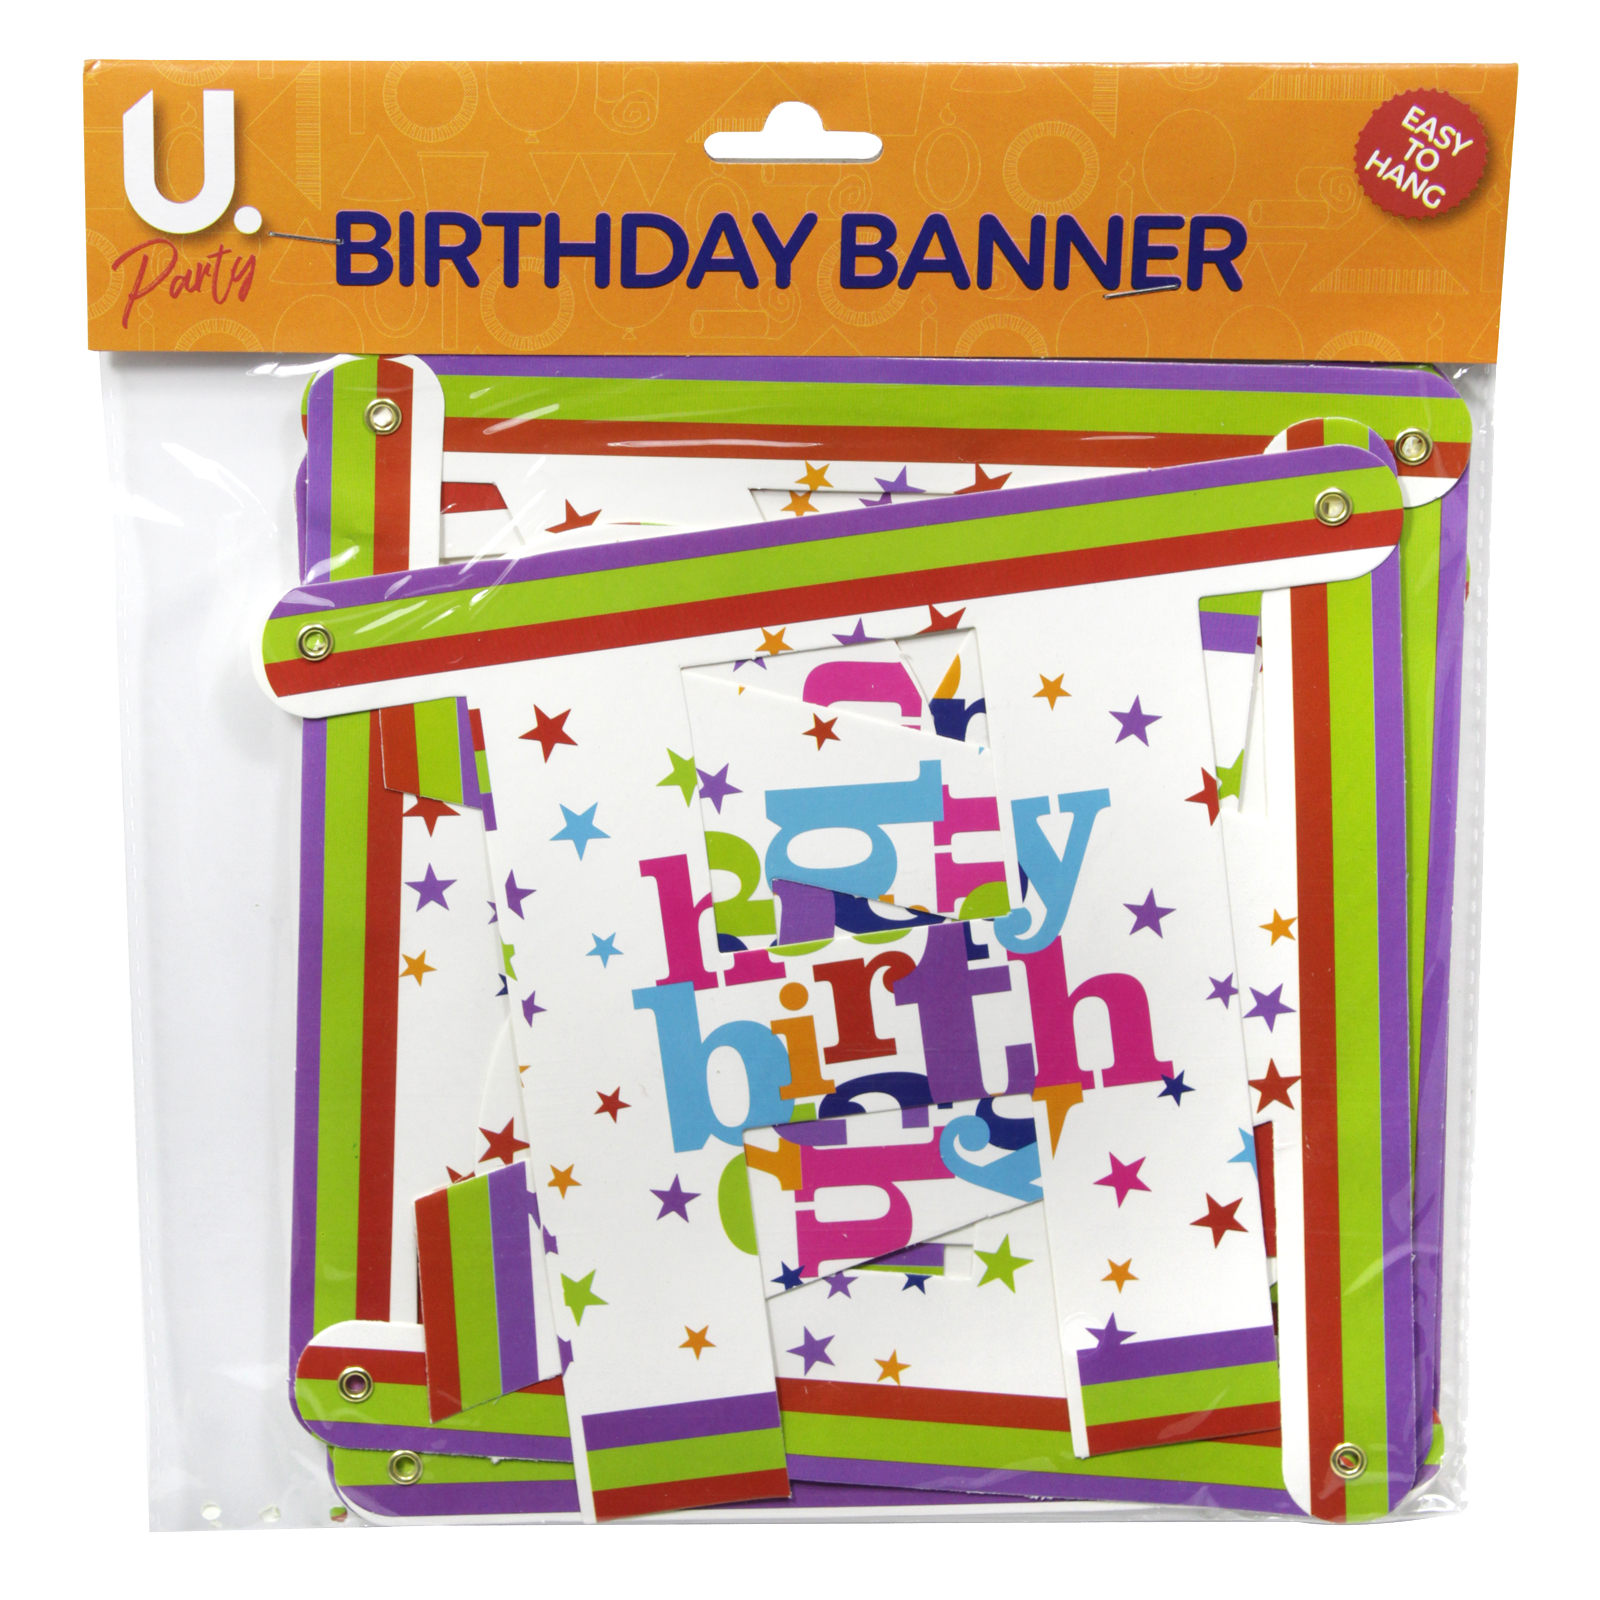 HAPPY BIRTHDAY PARTY BANNER